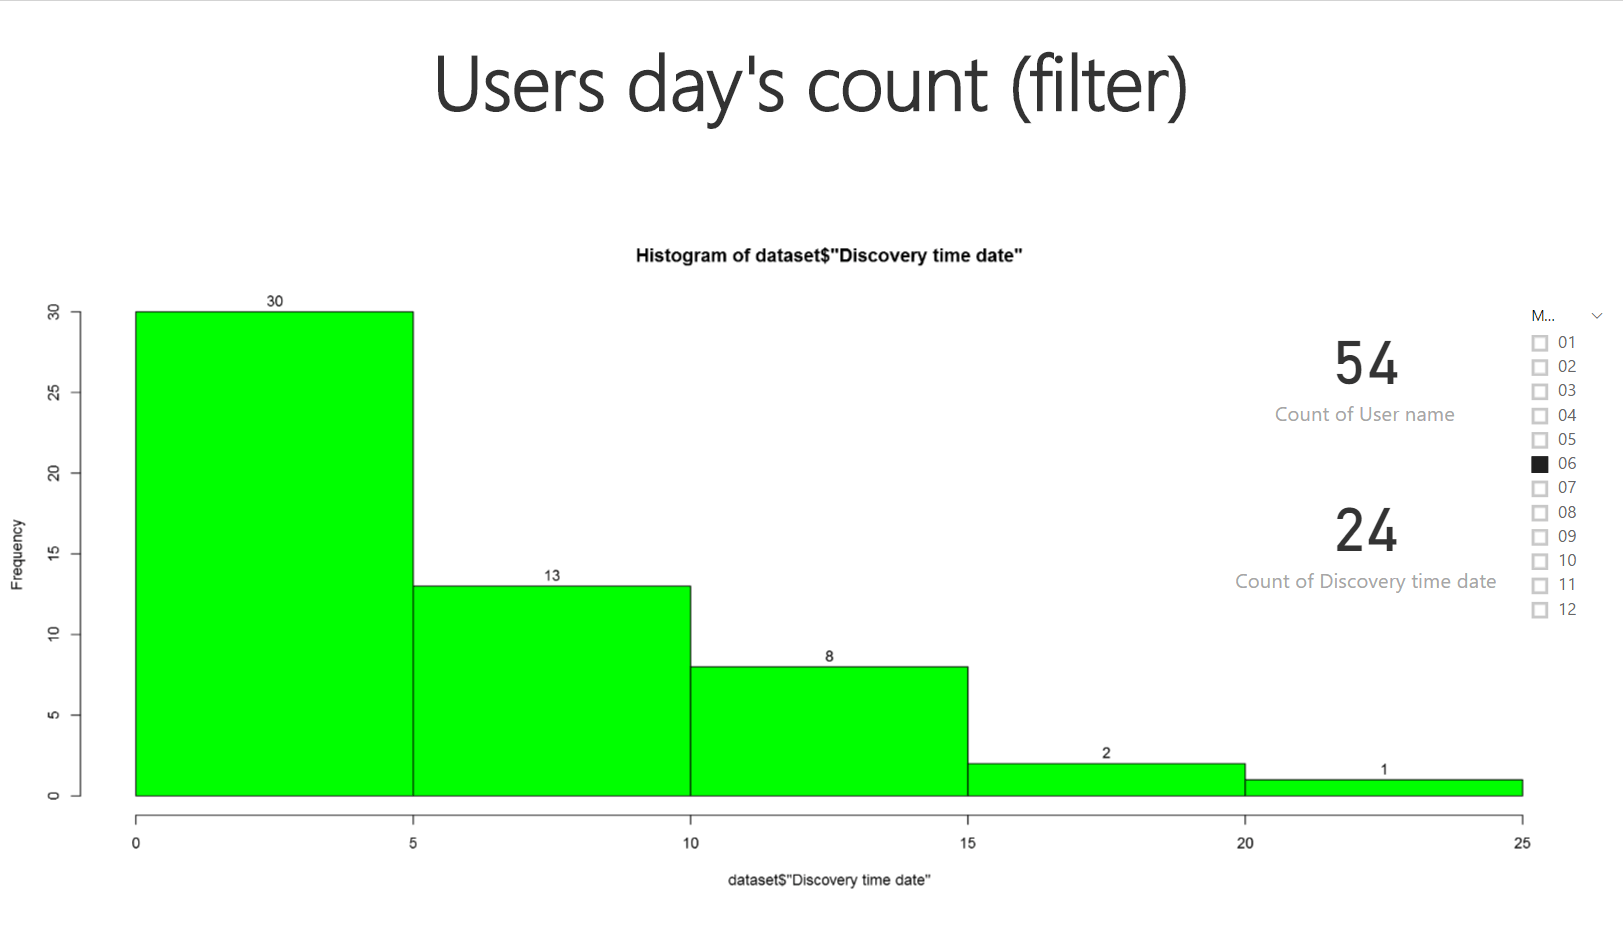 SSAS Users day's count (filter)